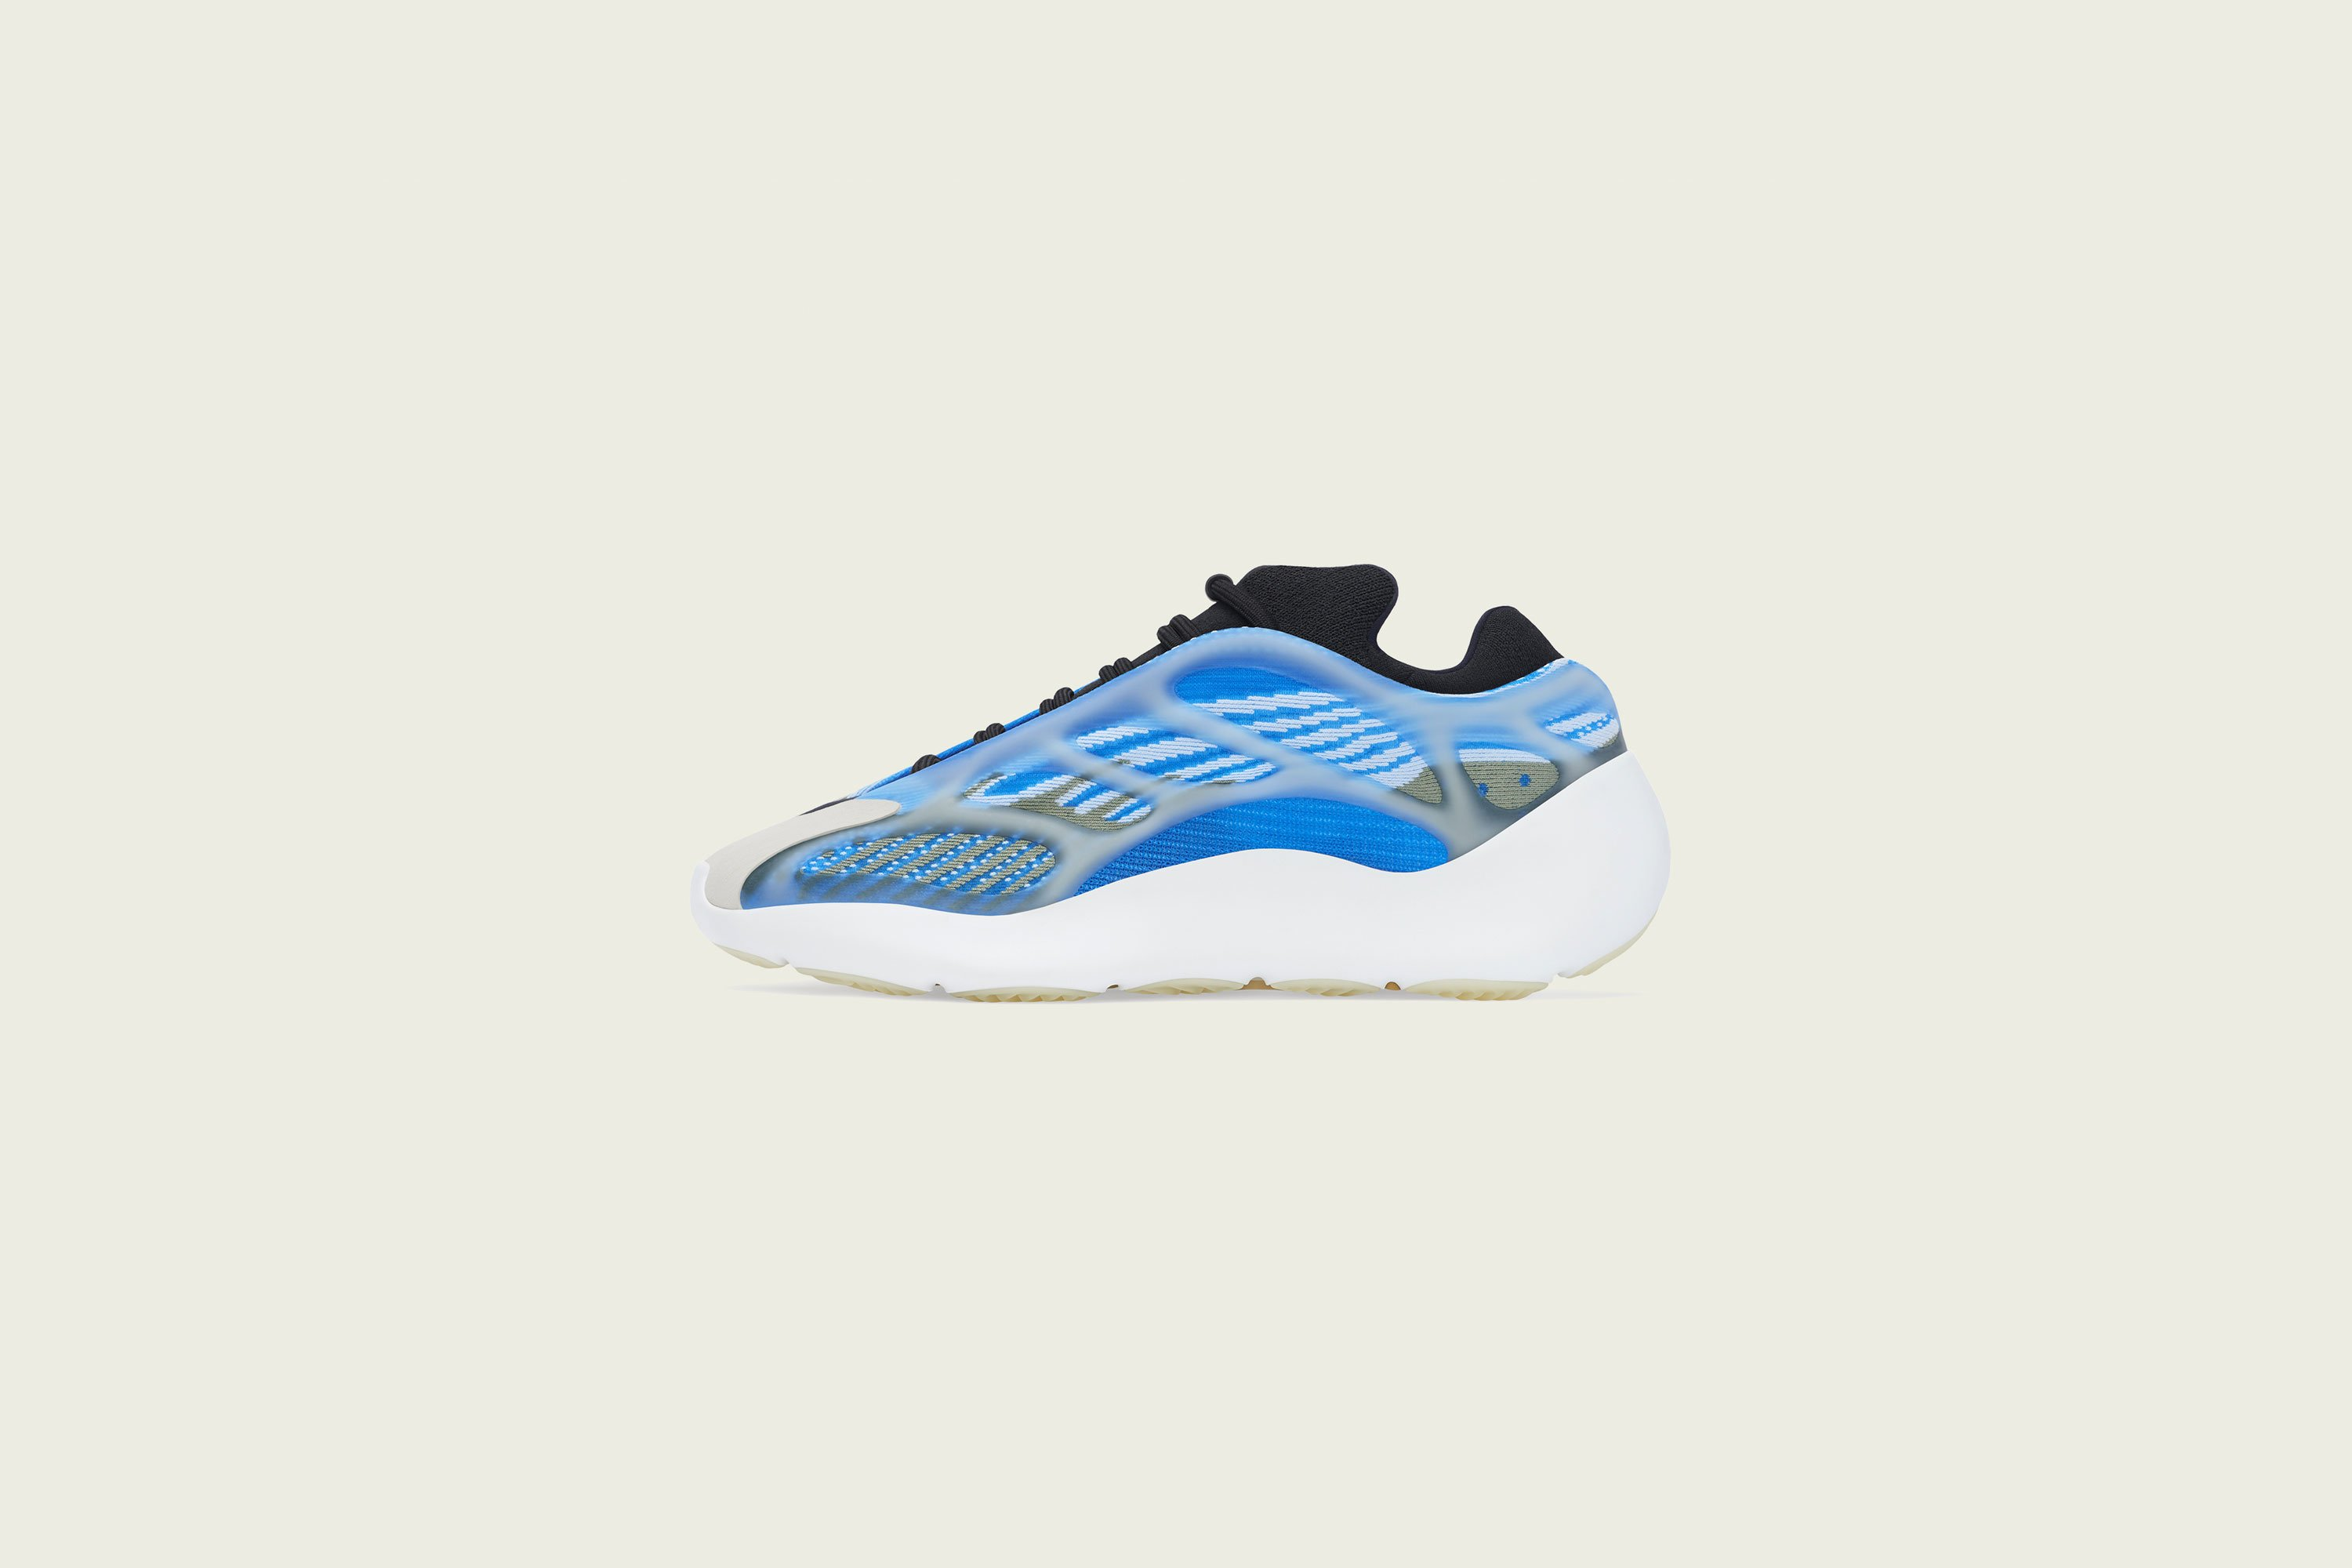 adidas - Yeezy 700v3 - Arzareth - Up There